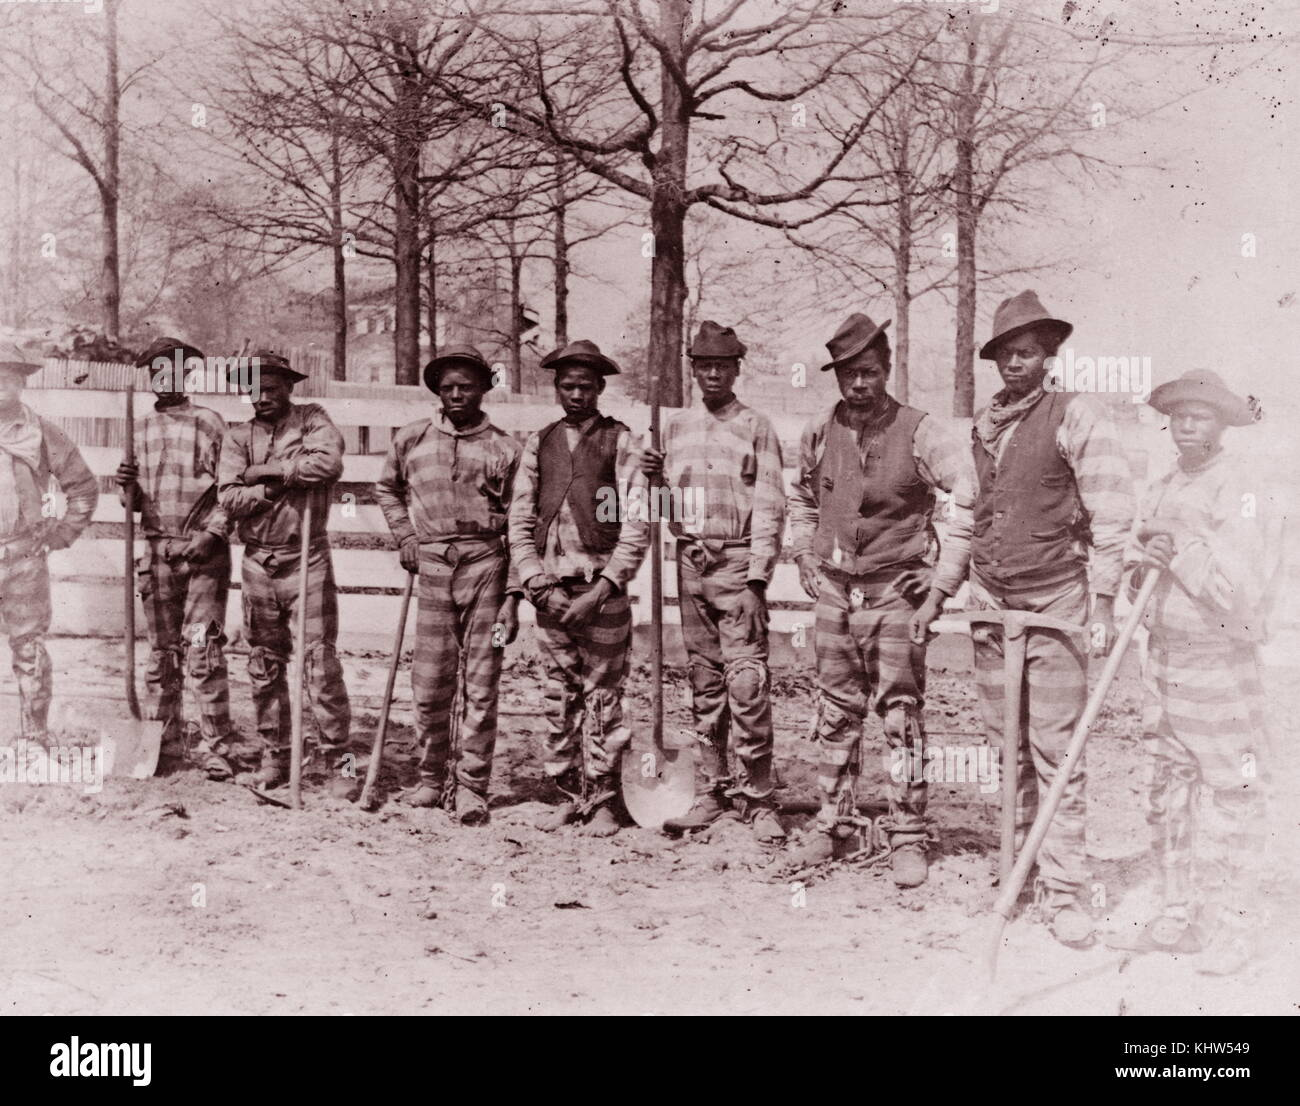 Photographic print of Nine African American men posed, standing along fence. Dated 19th Century - Stock Image